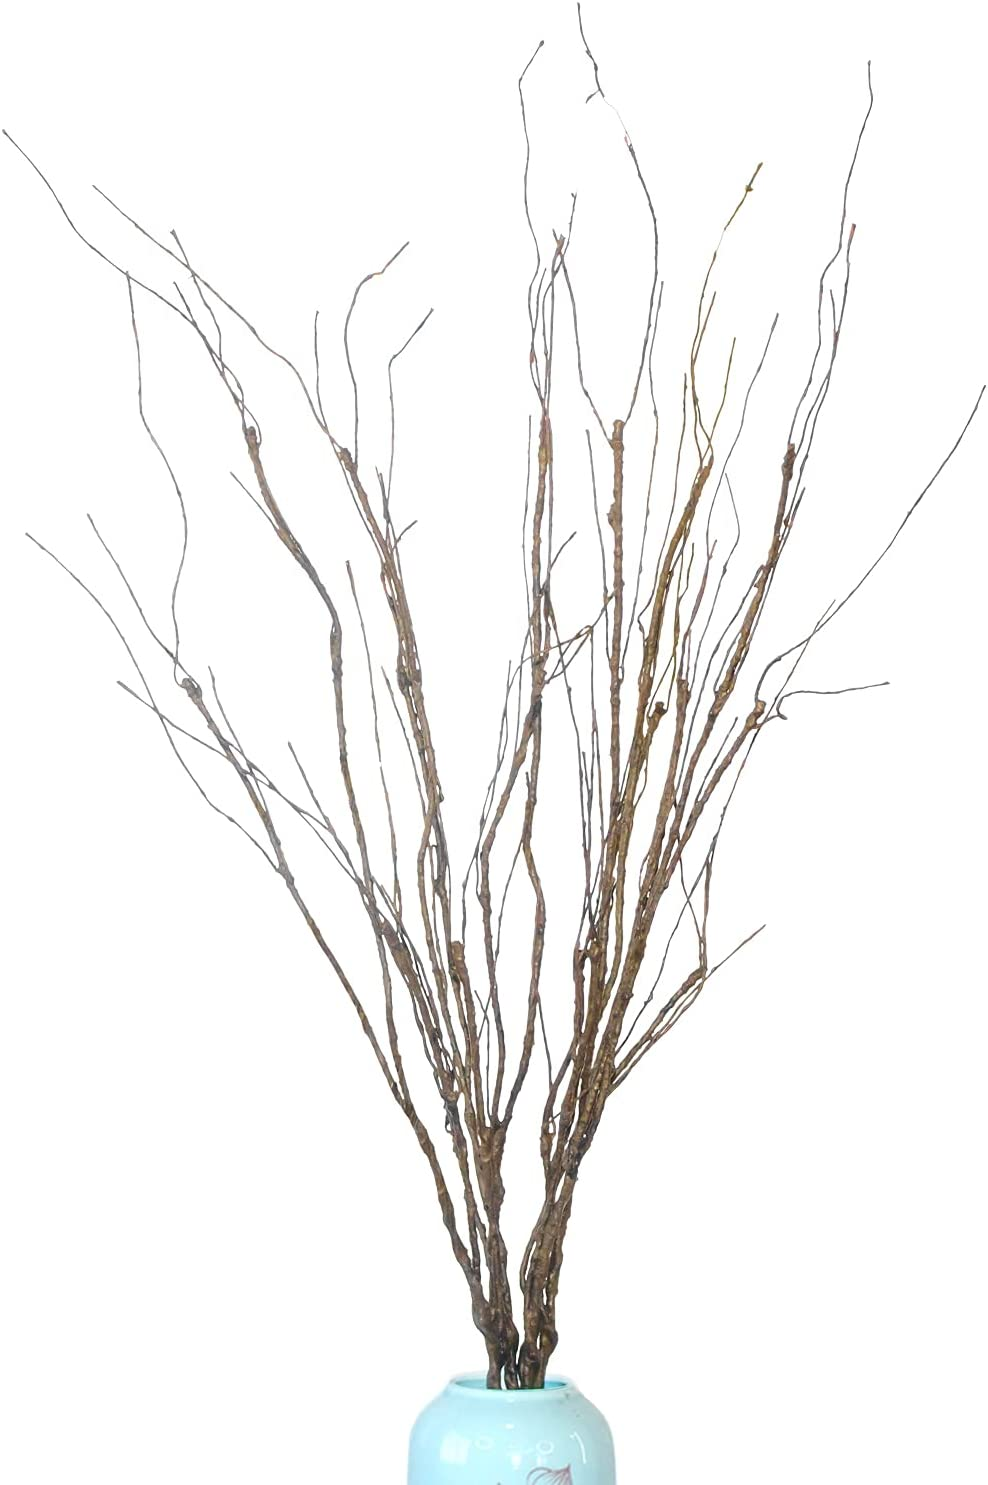 MGS 6 Pcs of 30.7 Inches Curly Willow Branches Artificial Twigs, Twisted Sticks Artificial Branches Bendable Iron Wires Stub Steml Plants Greenery Brown Branches, For Décor DIY Crafts Twisted Branches